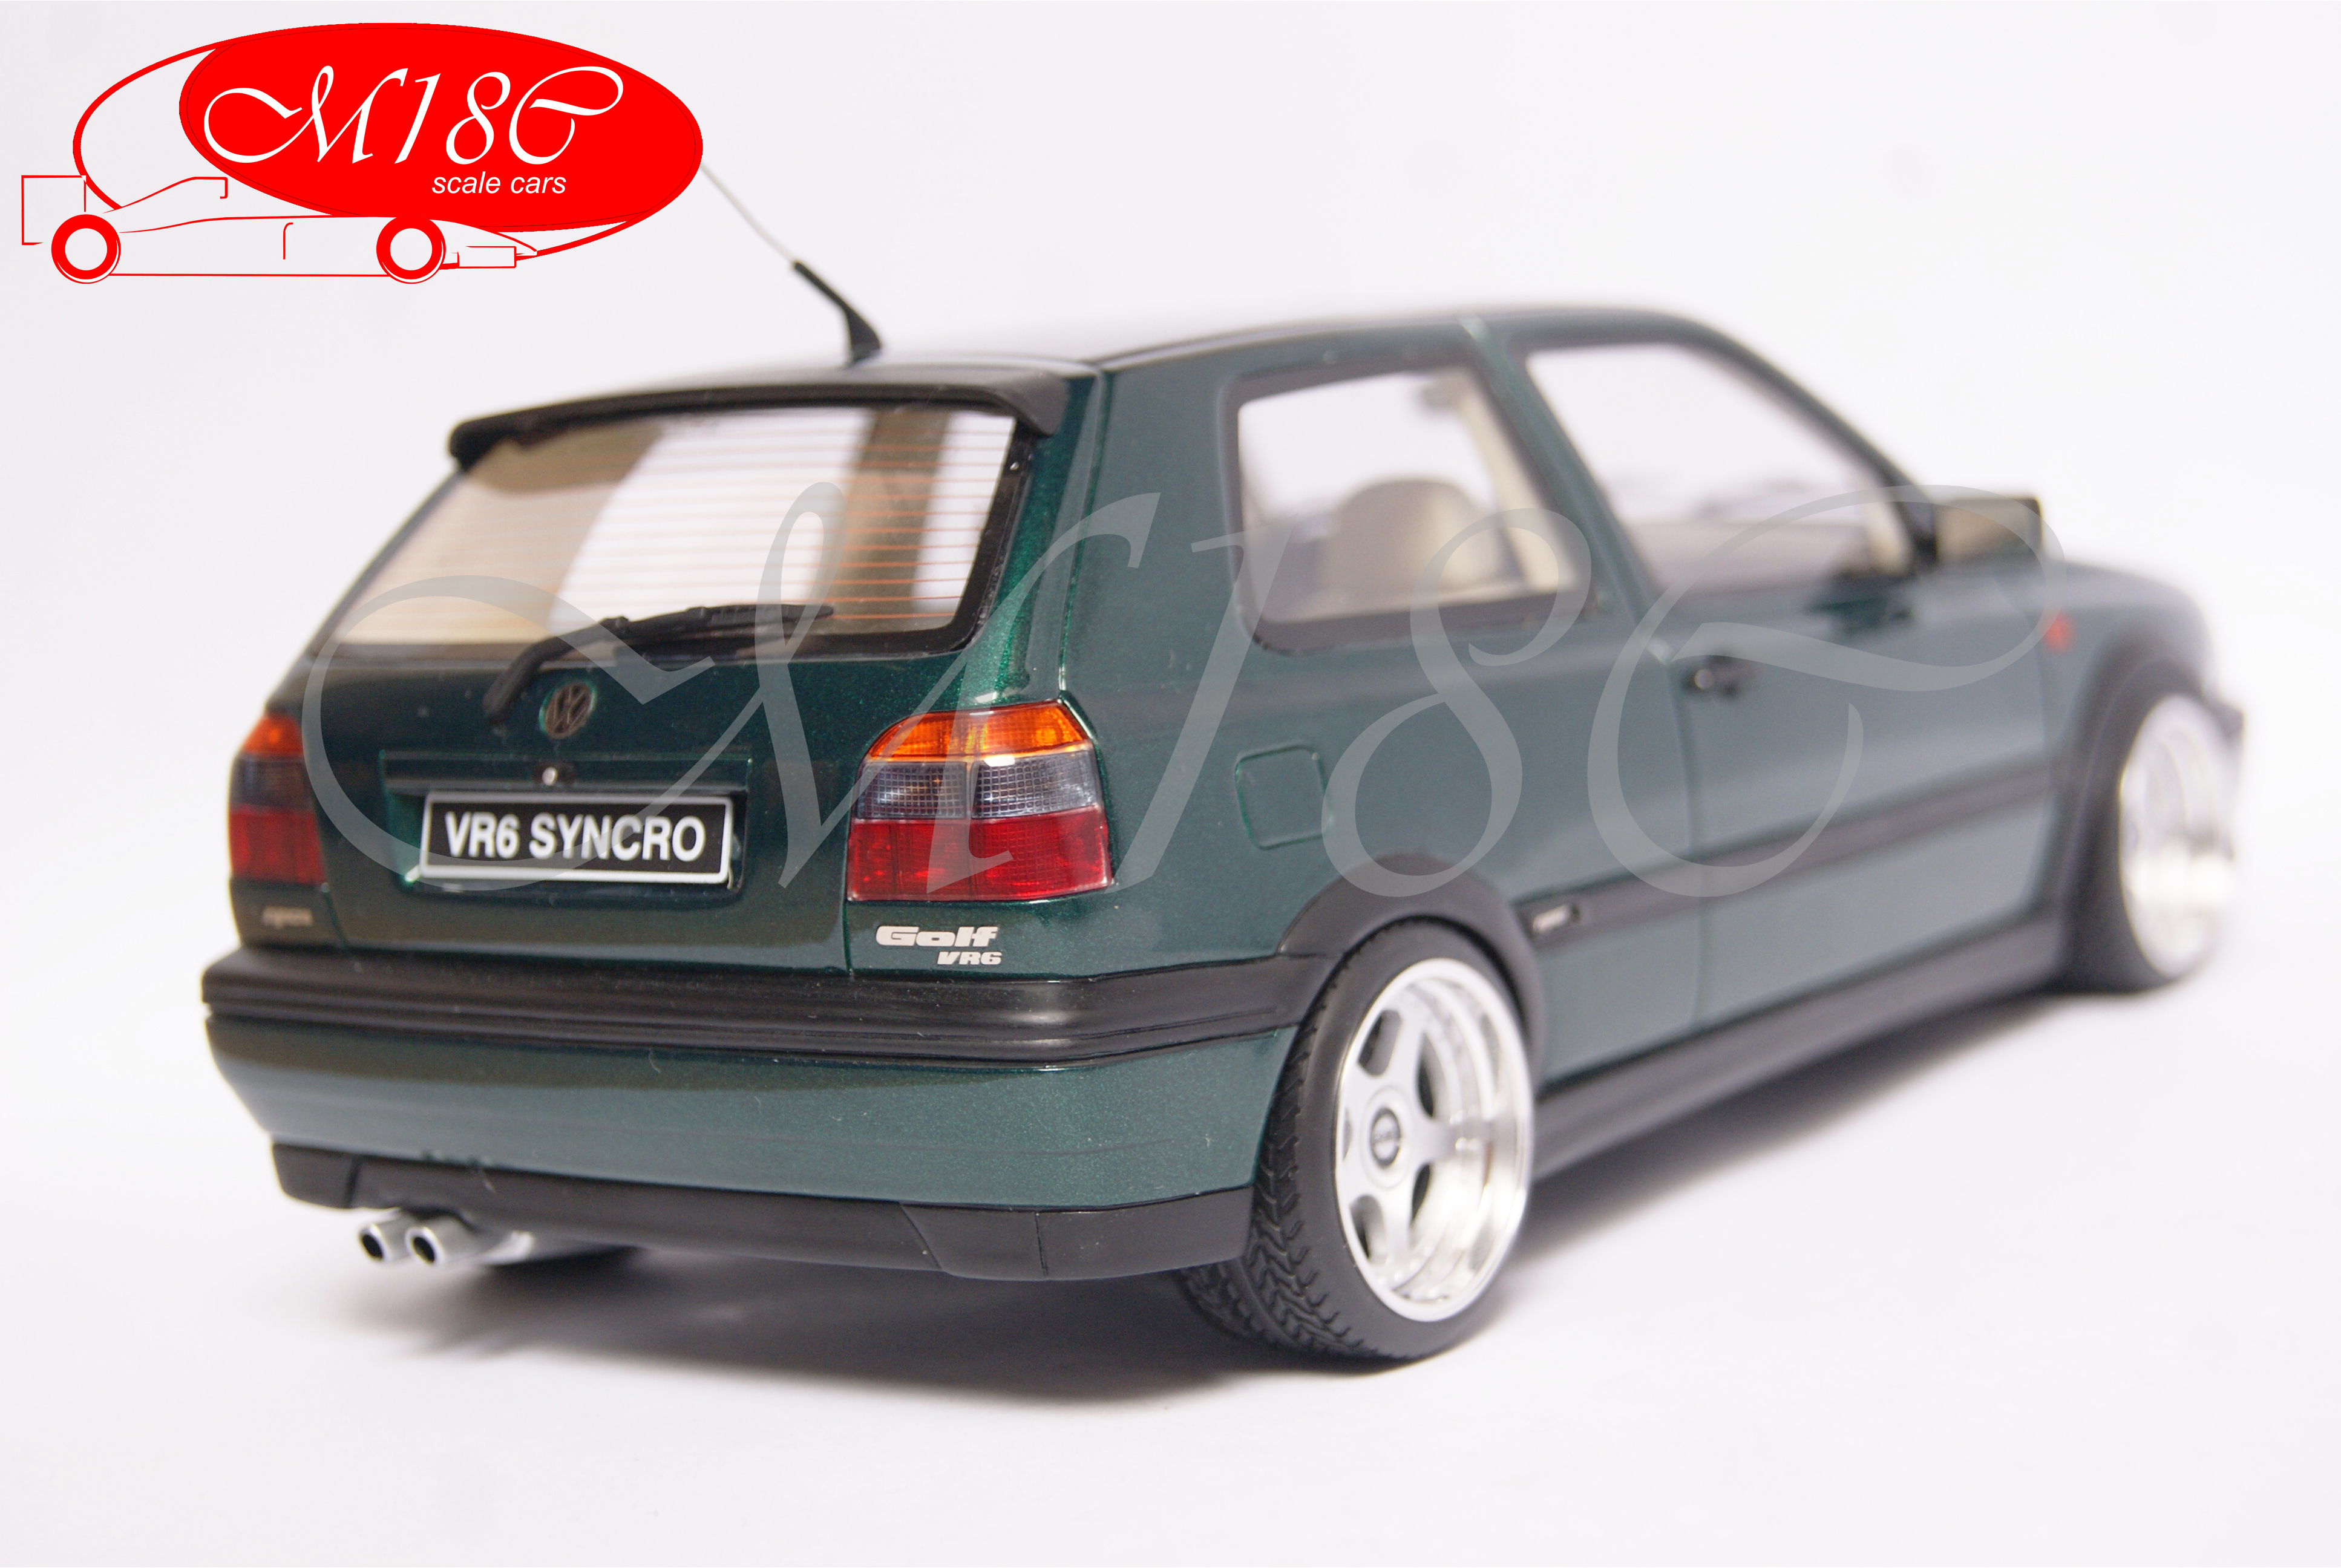 Volkswagen Golf III 1/18 Ottomobile VR6 synchro verte jantes OZ Racing 17 pouces